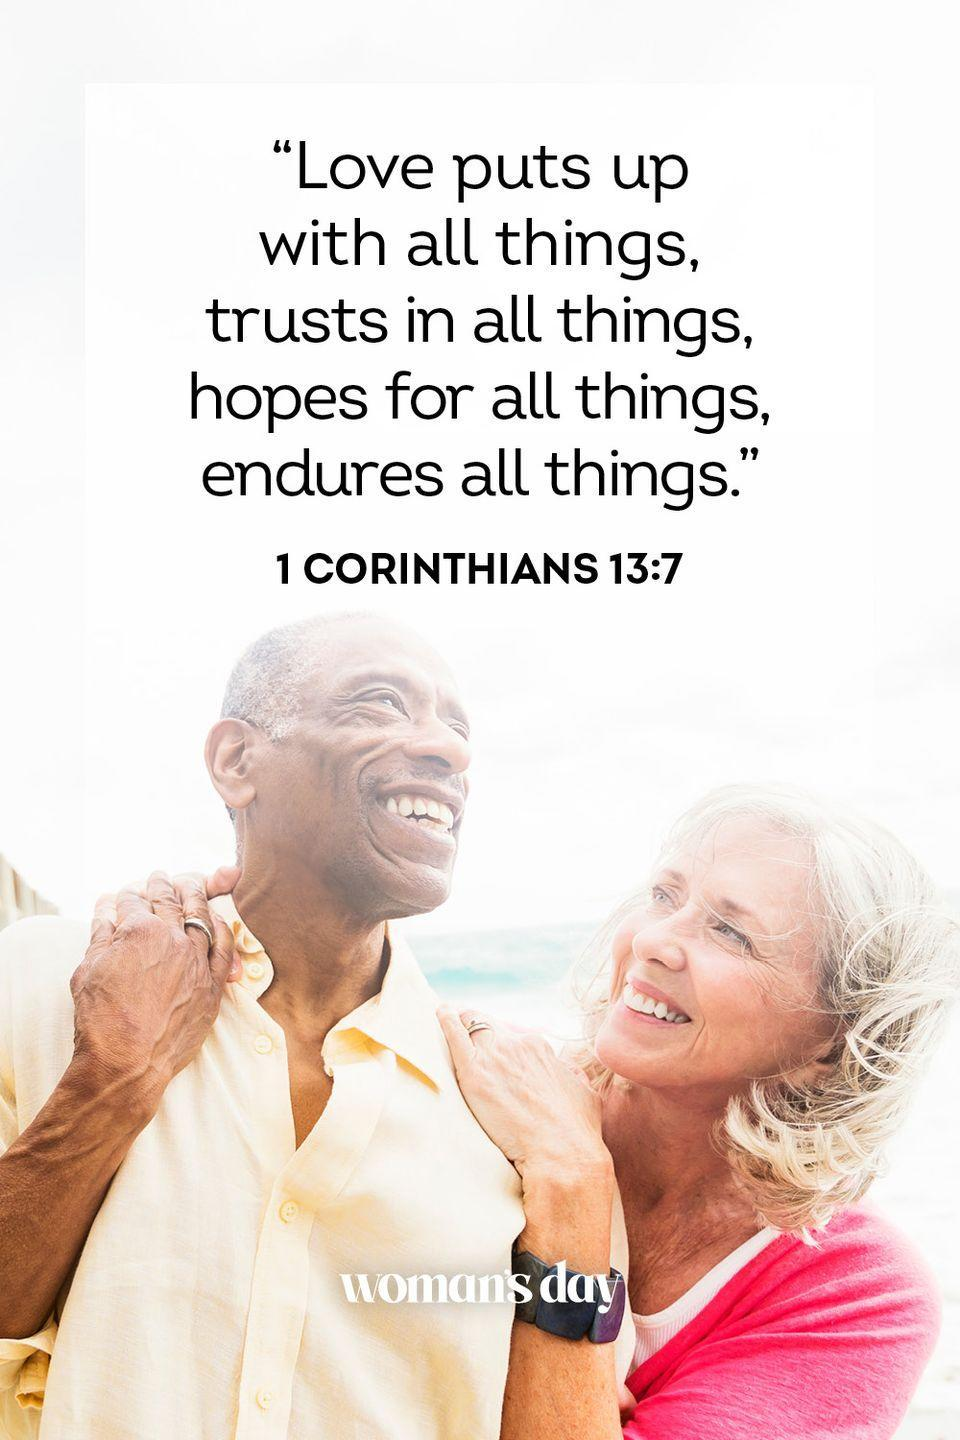 """<p>""""Love puts up with all things, trusts in all things, hopes for all things, endures all things."""" — 1 Corinthians 13:7</p><p><strong>The Good News: </strong>This passage could refer to God's love and how it will always be there for us when we need it. But it could also refer to the love of our families and friends who have our backs no matter what.</p>"""